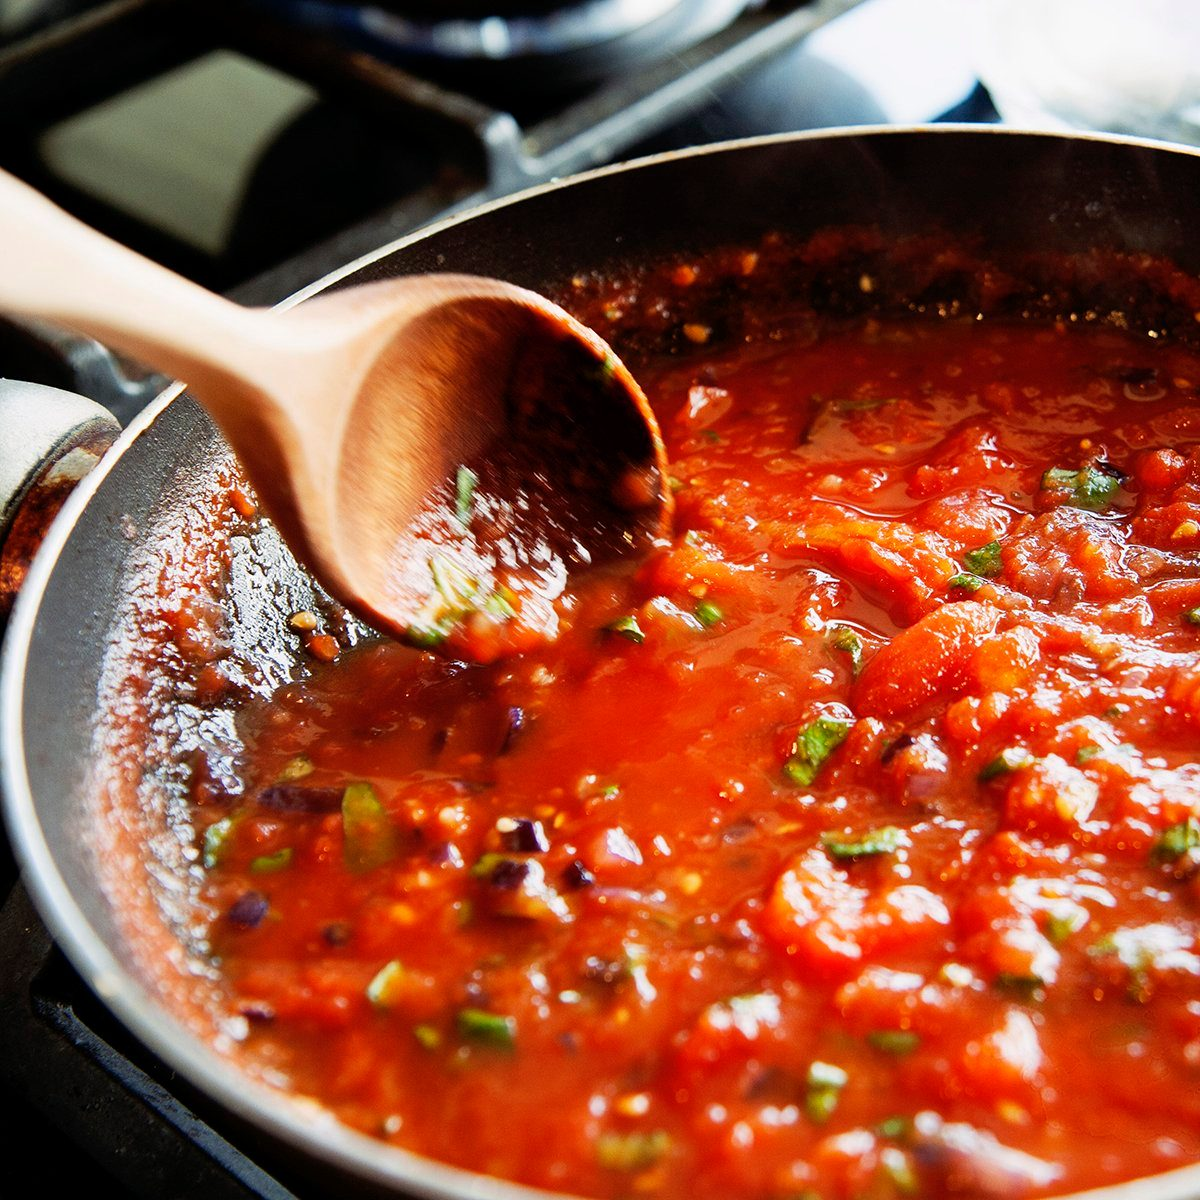 Vilnius, Lithuania - June 17, 2011: preparing of a homemade tomato sauce in a frying pan from fresh tomatoes.